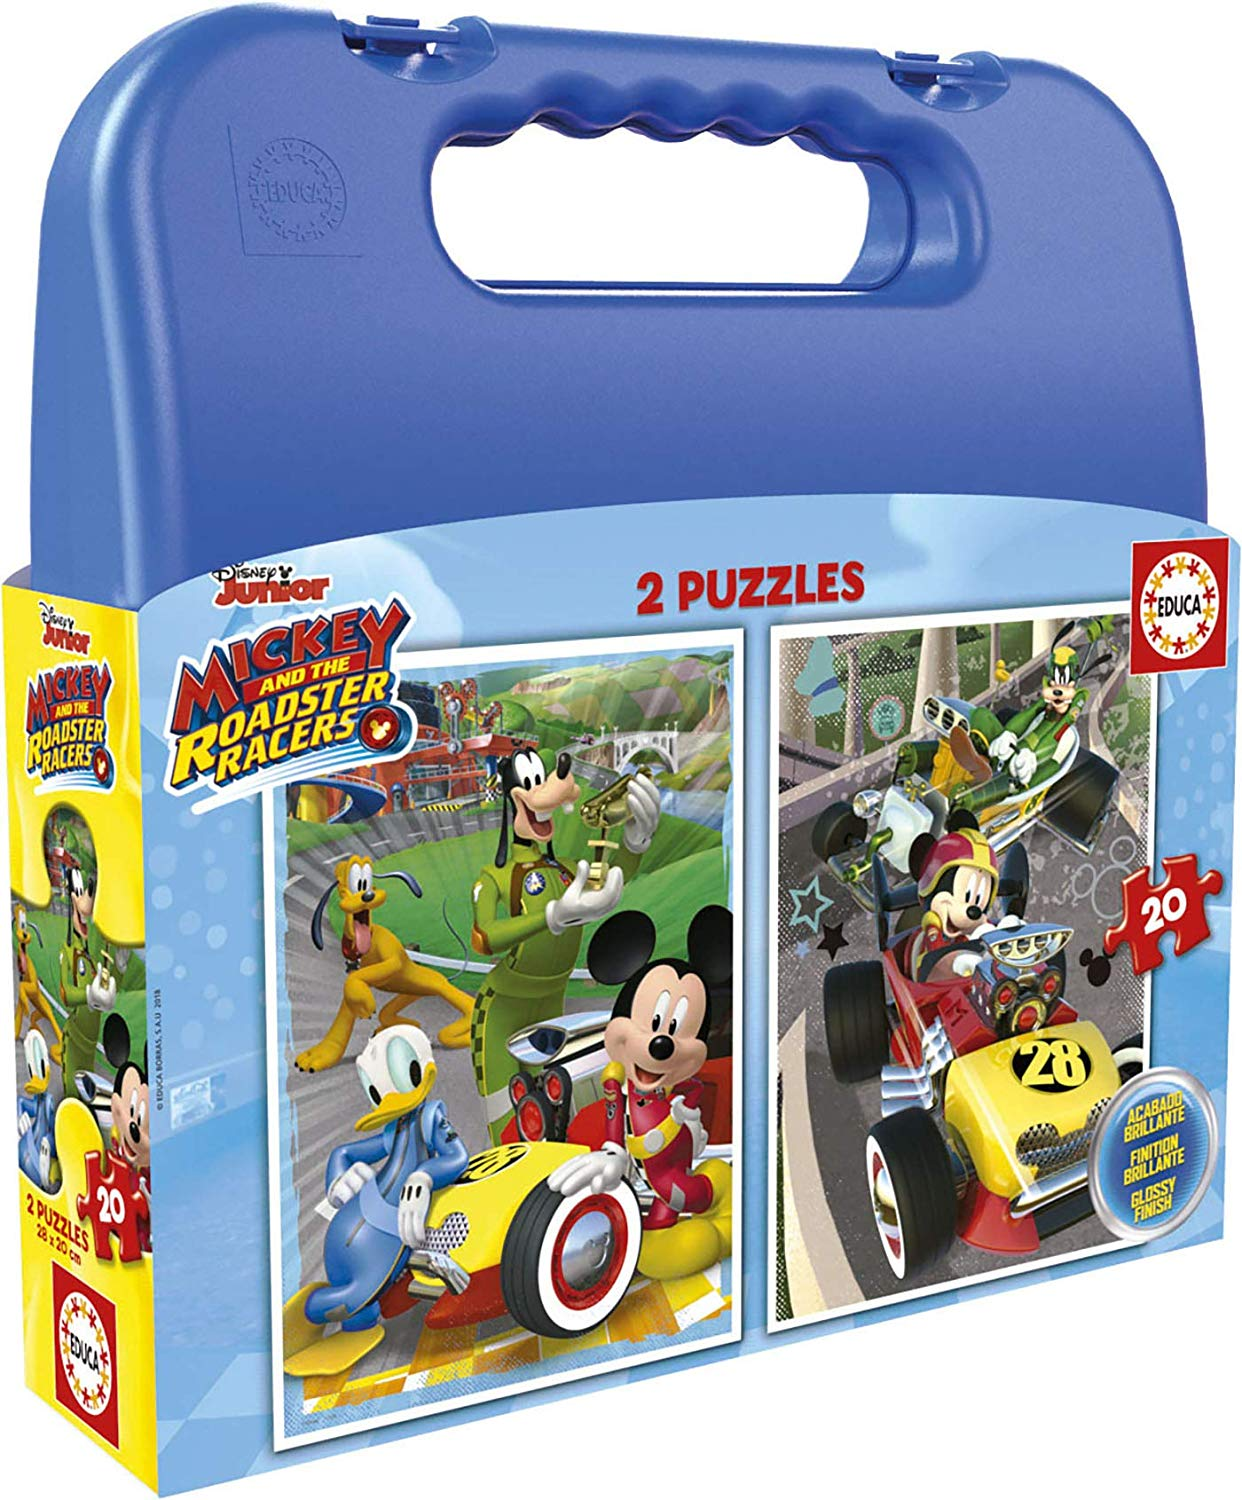 2-puzzles-mickey-roadster-racers